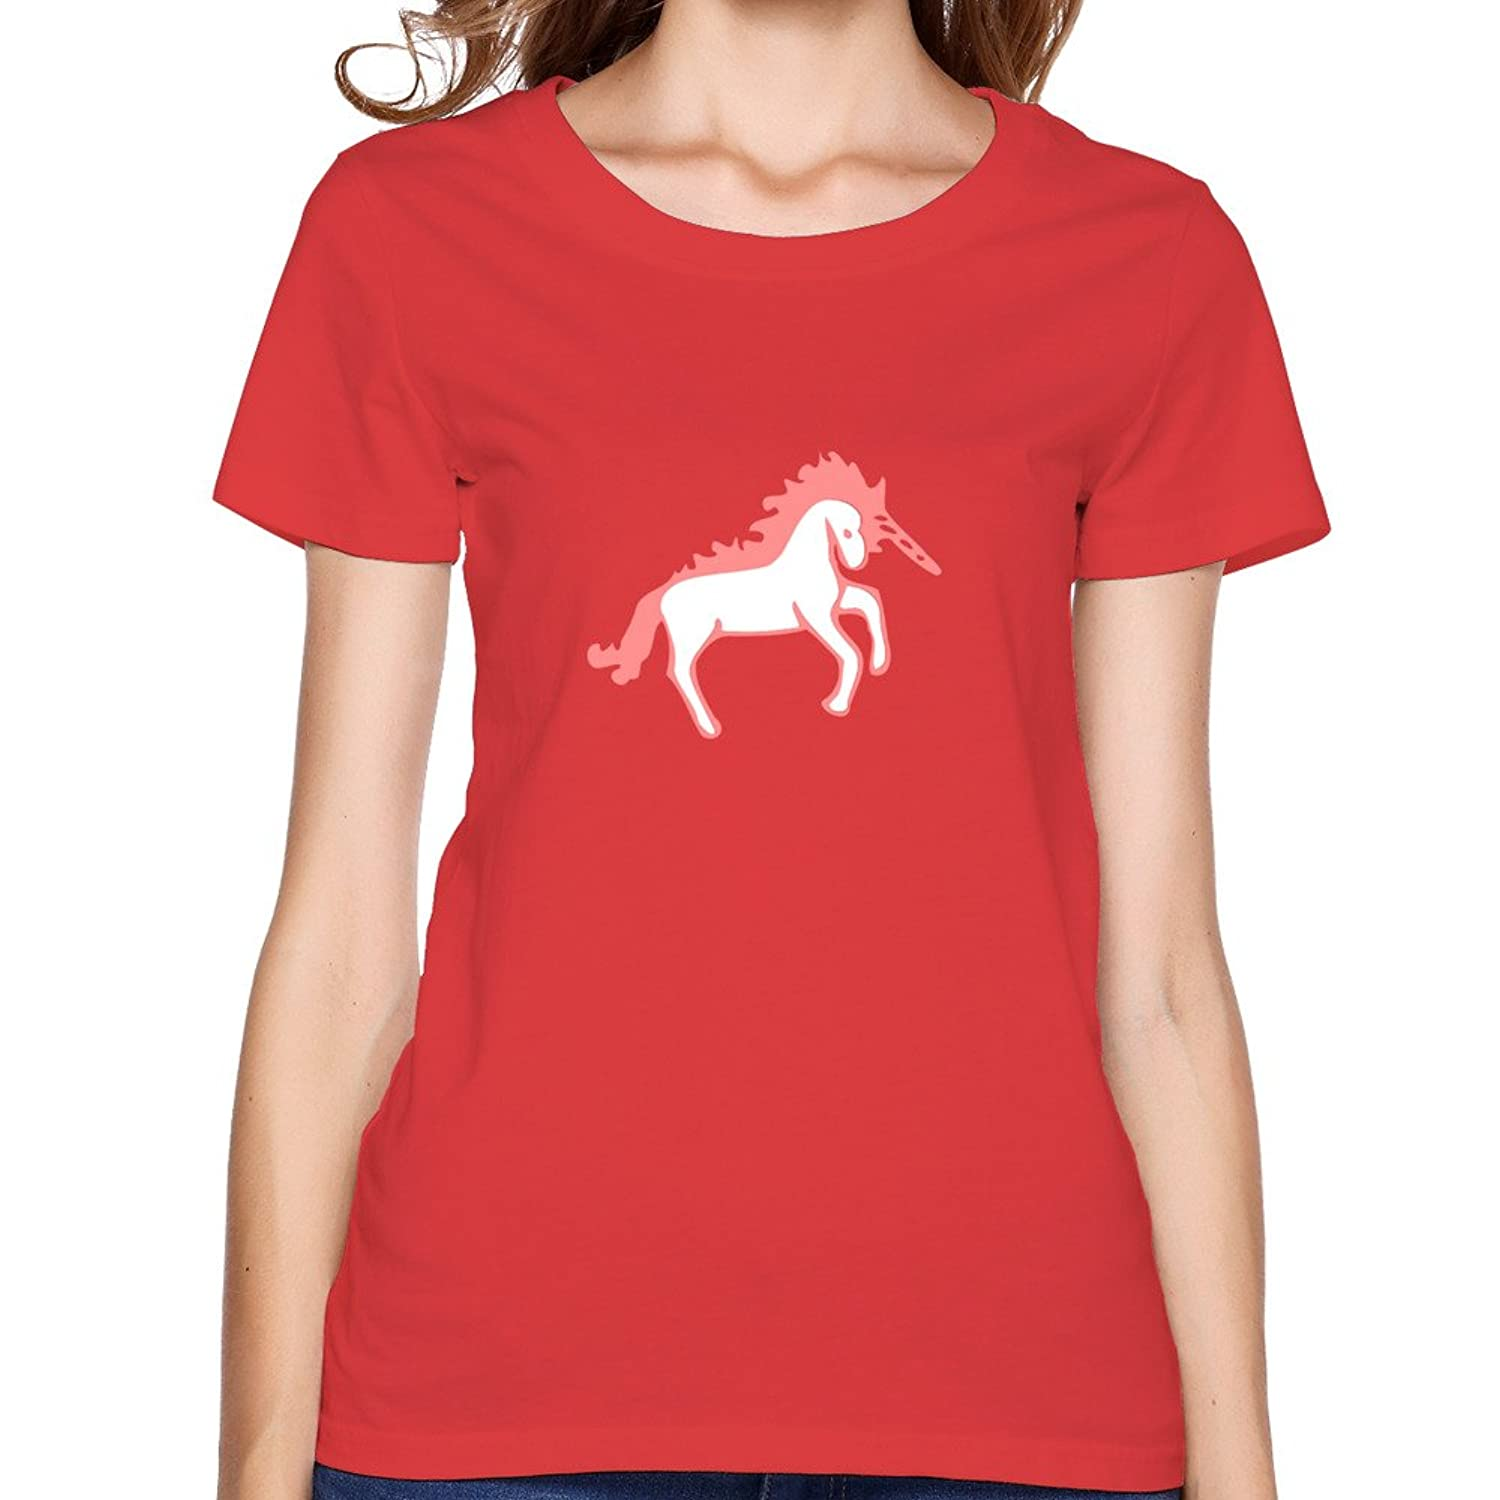 Women's Tee Pink Unicorn Black